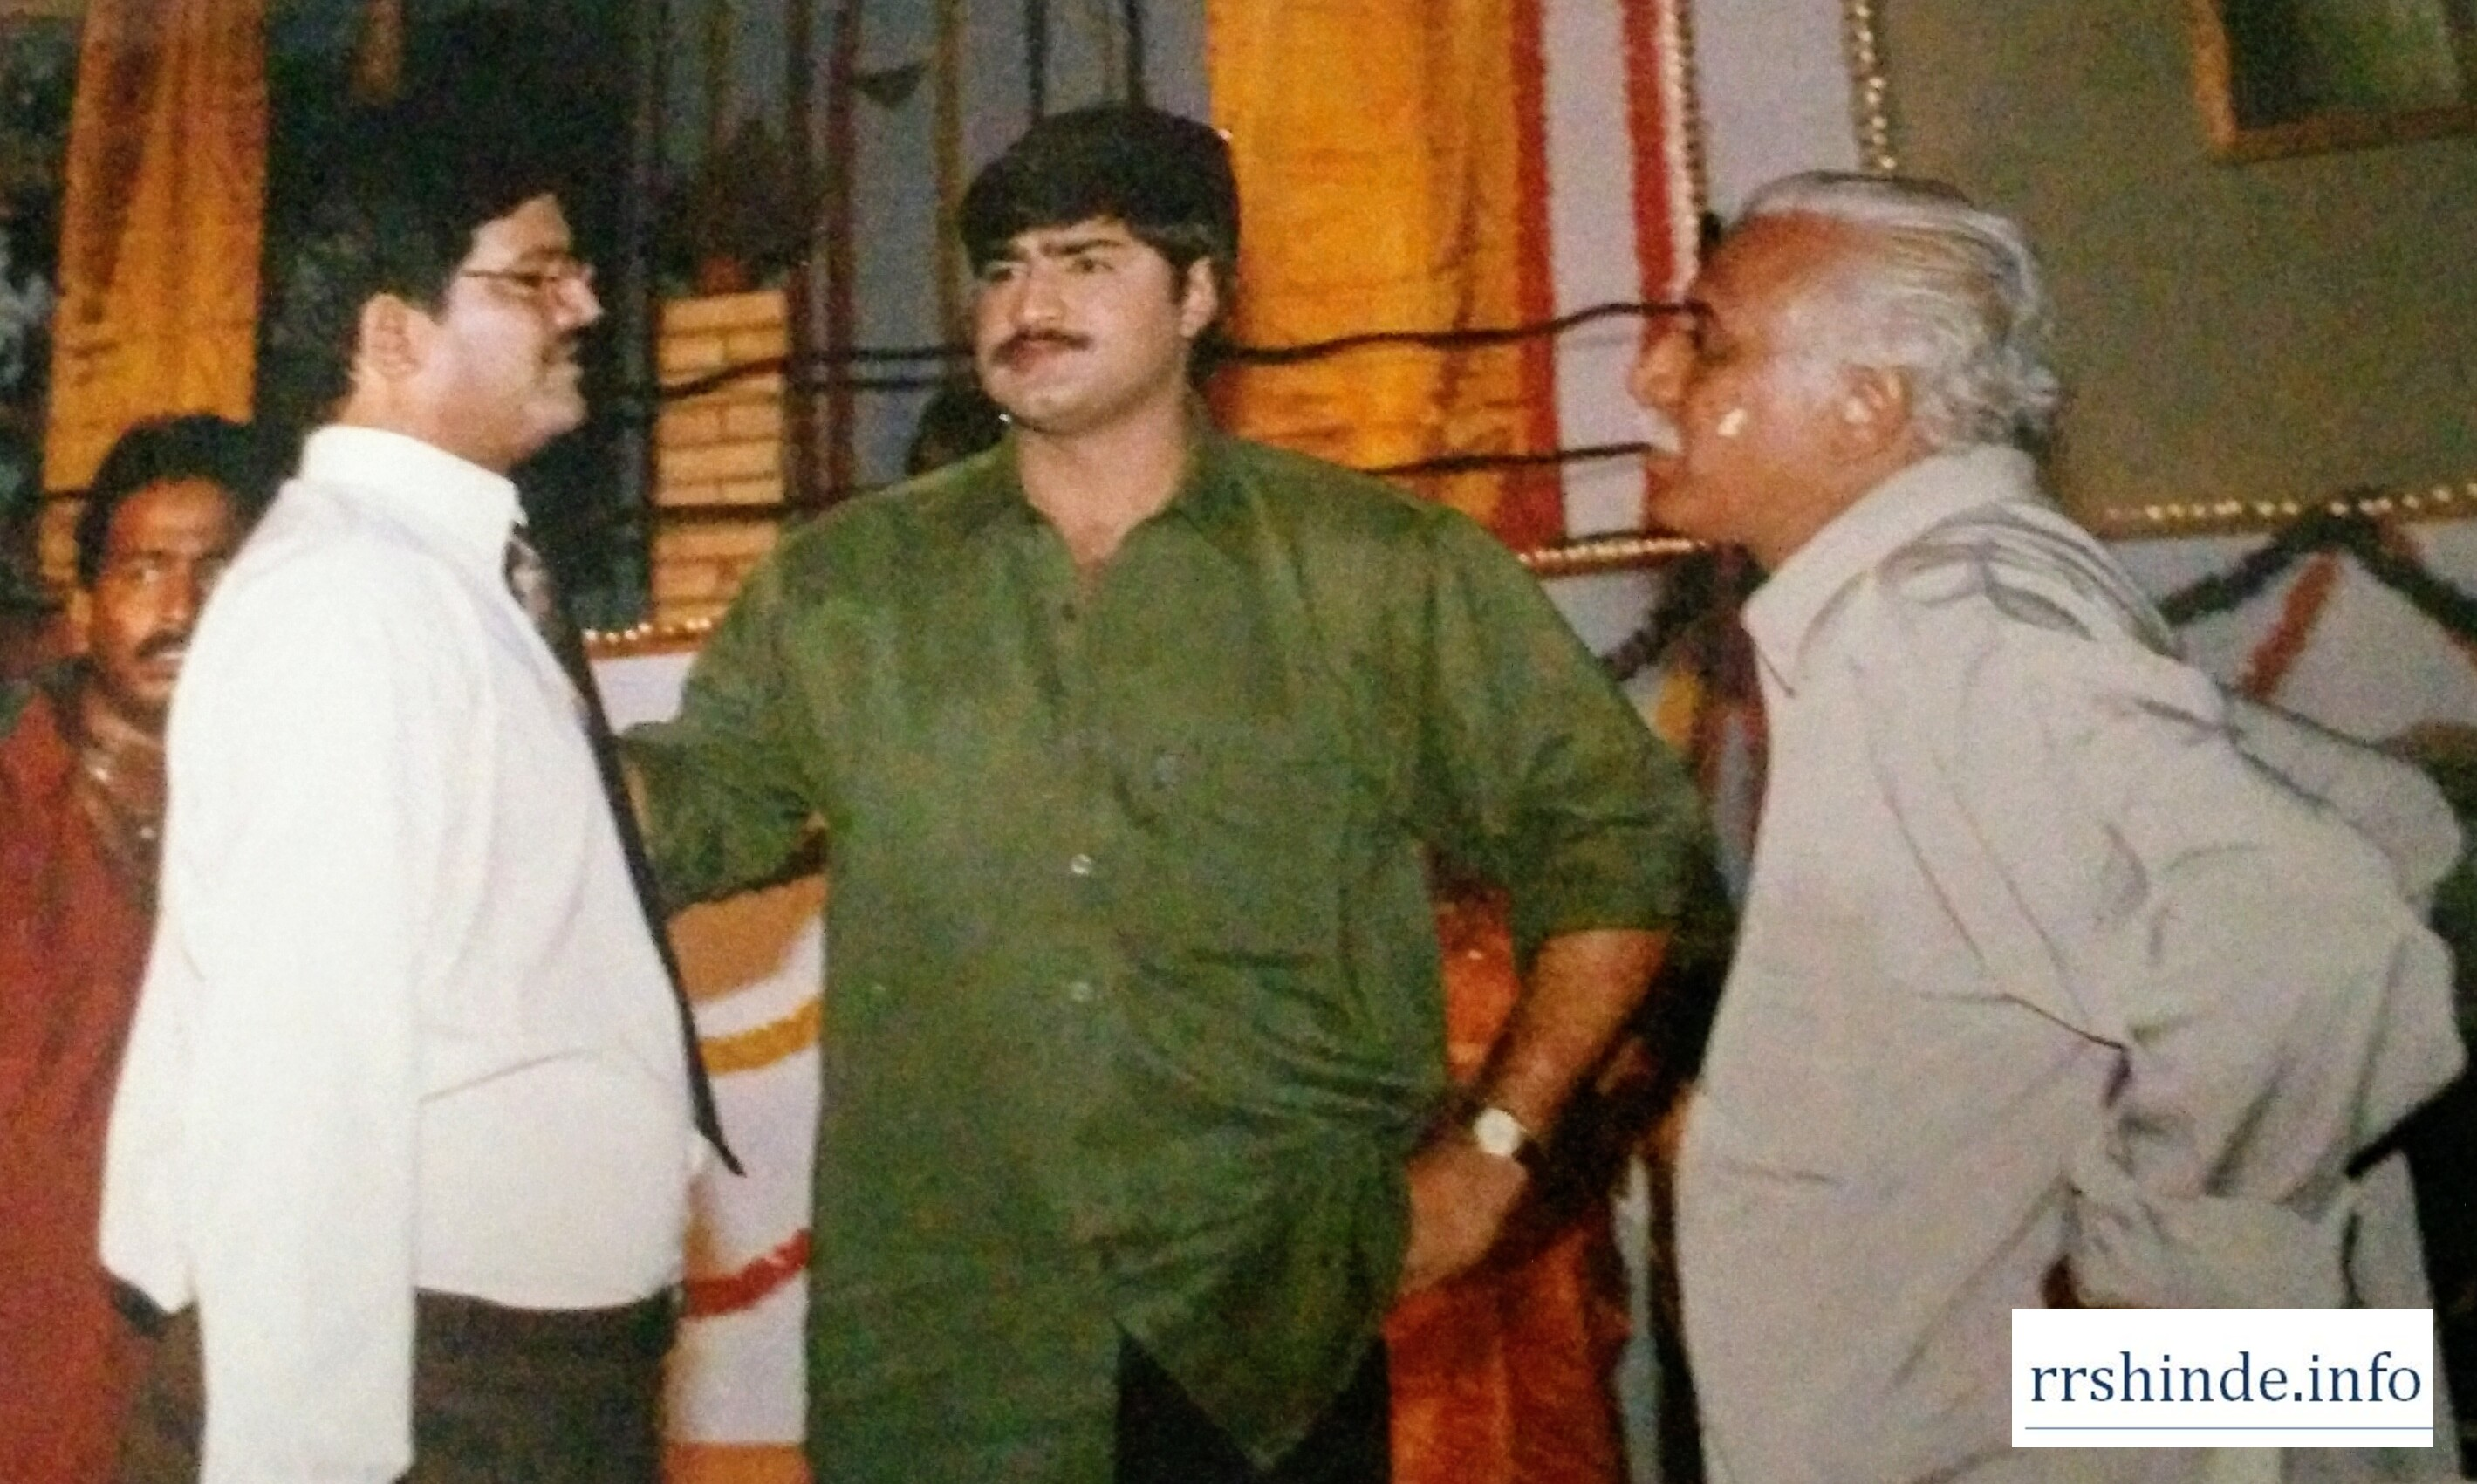 R.R Shinde on sets of Ninne Premistha